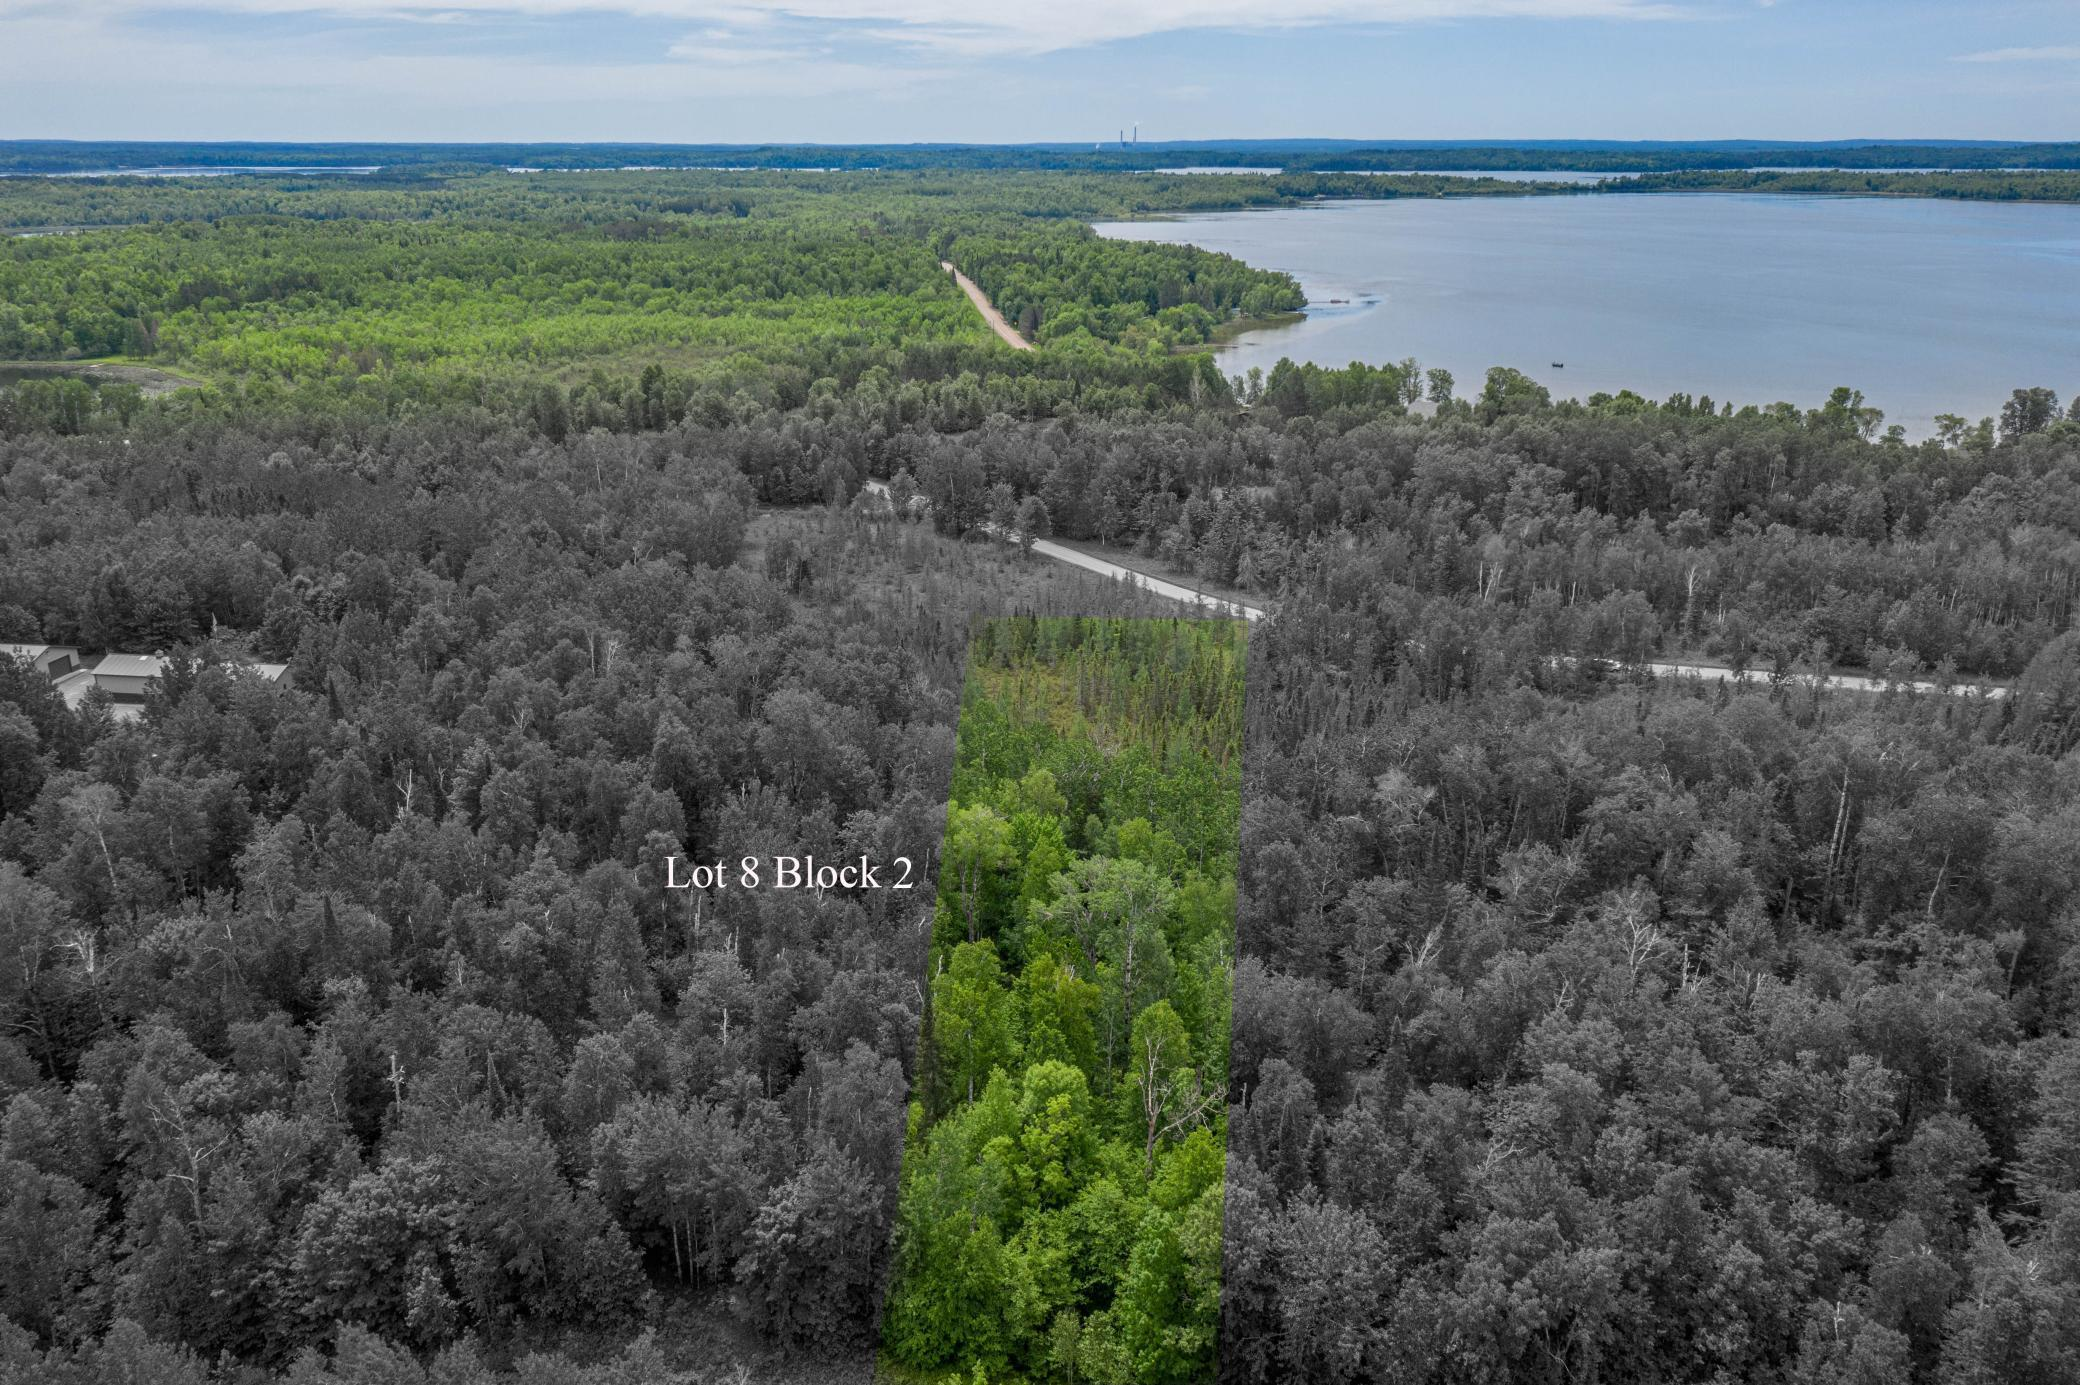 The Land is a plat with 15 available lots in a prime location just north of Deer, Moose and Little Moose lakes with several of the lots backing onto the Chippewa National Forest. The lots all have access to underground utilities including electric and Paul Bunyan high speed internet. This lot offers nearby access to miles of public forest, trails and the Suomi Recreation Area. Build your new home, cabin or use as a recreation lot for year round outdoor adventure.